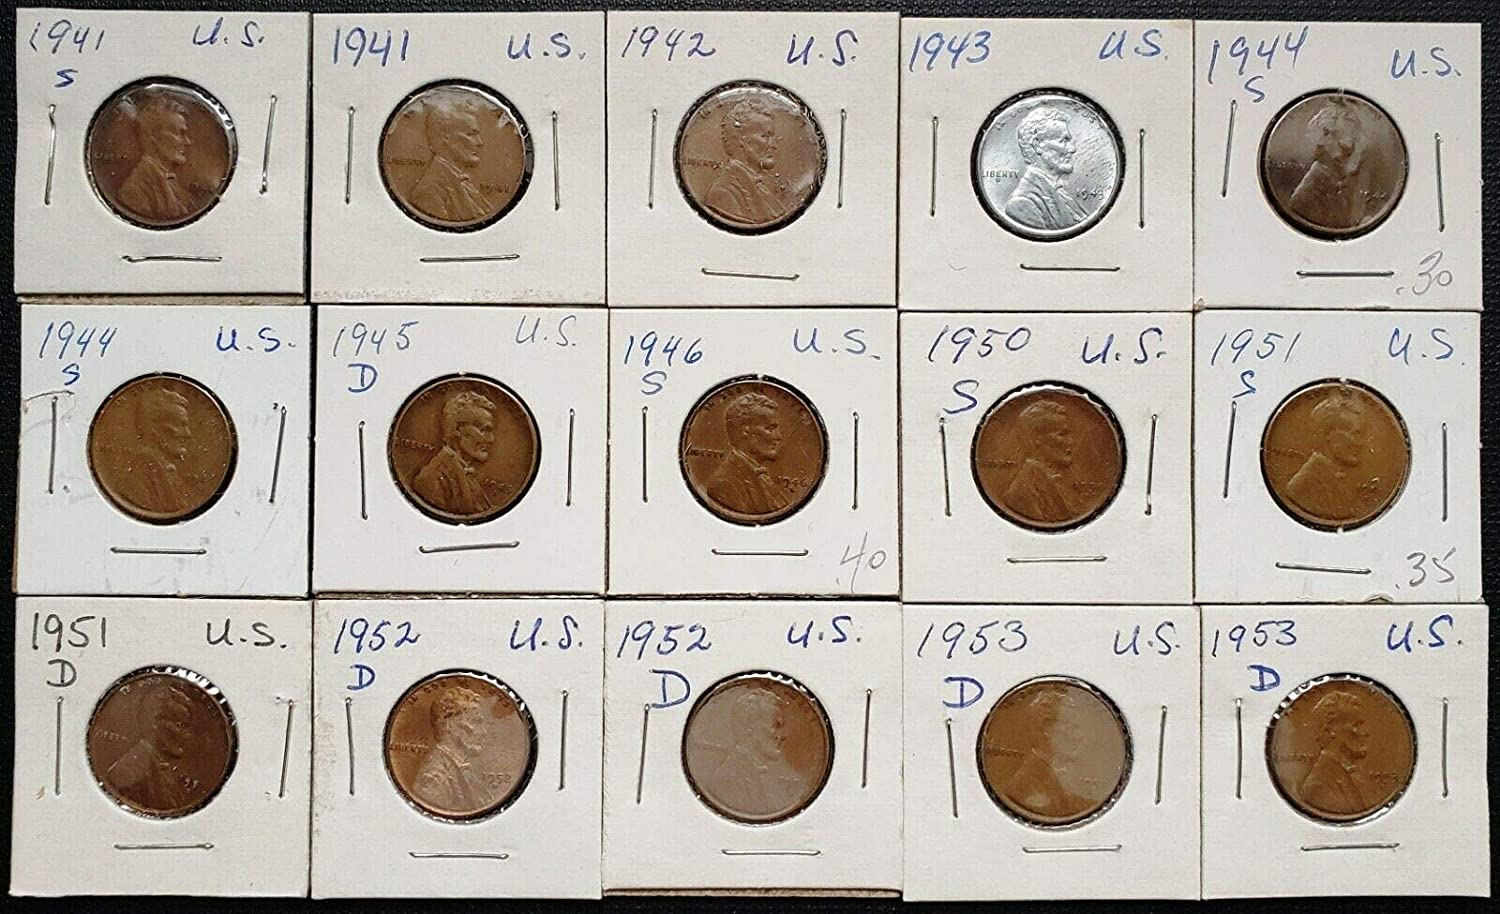 Dates Lot of 15x USA Lincoln Wheat Cents 1941 to 1953